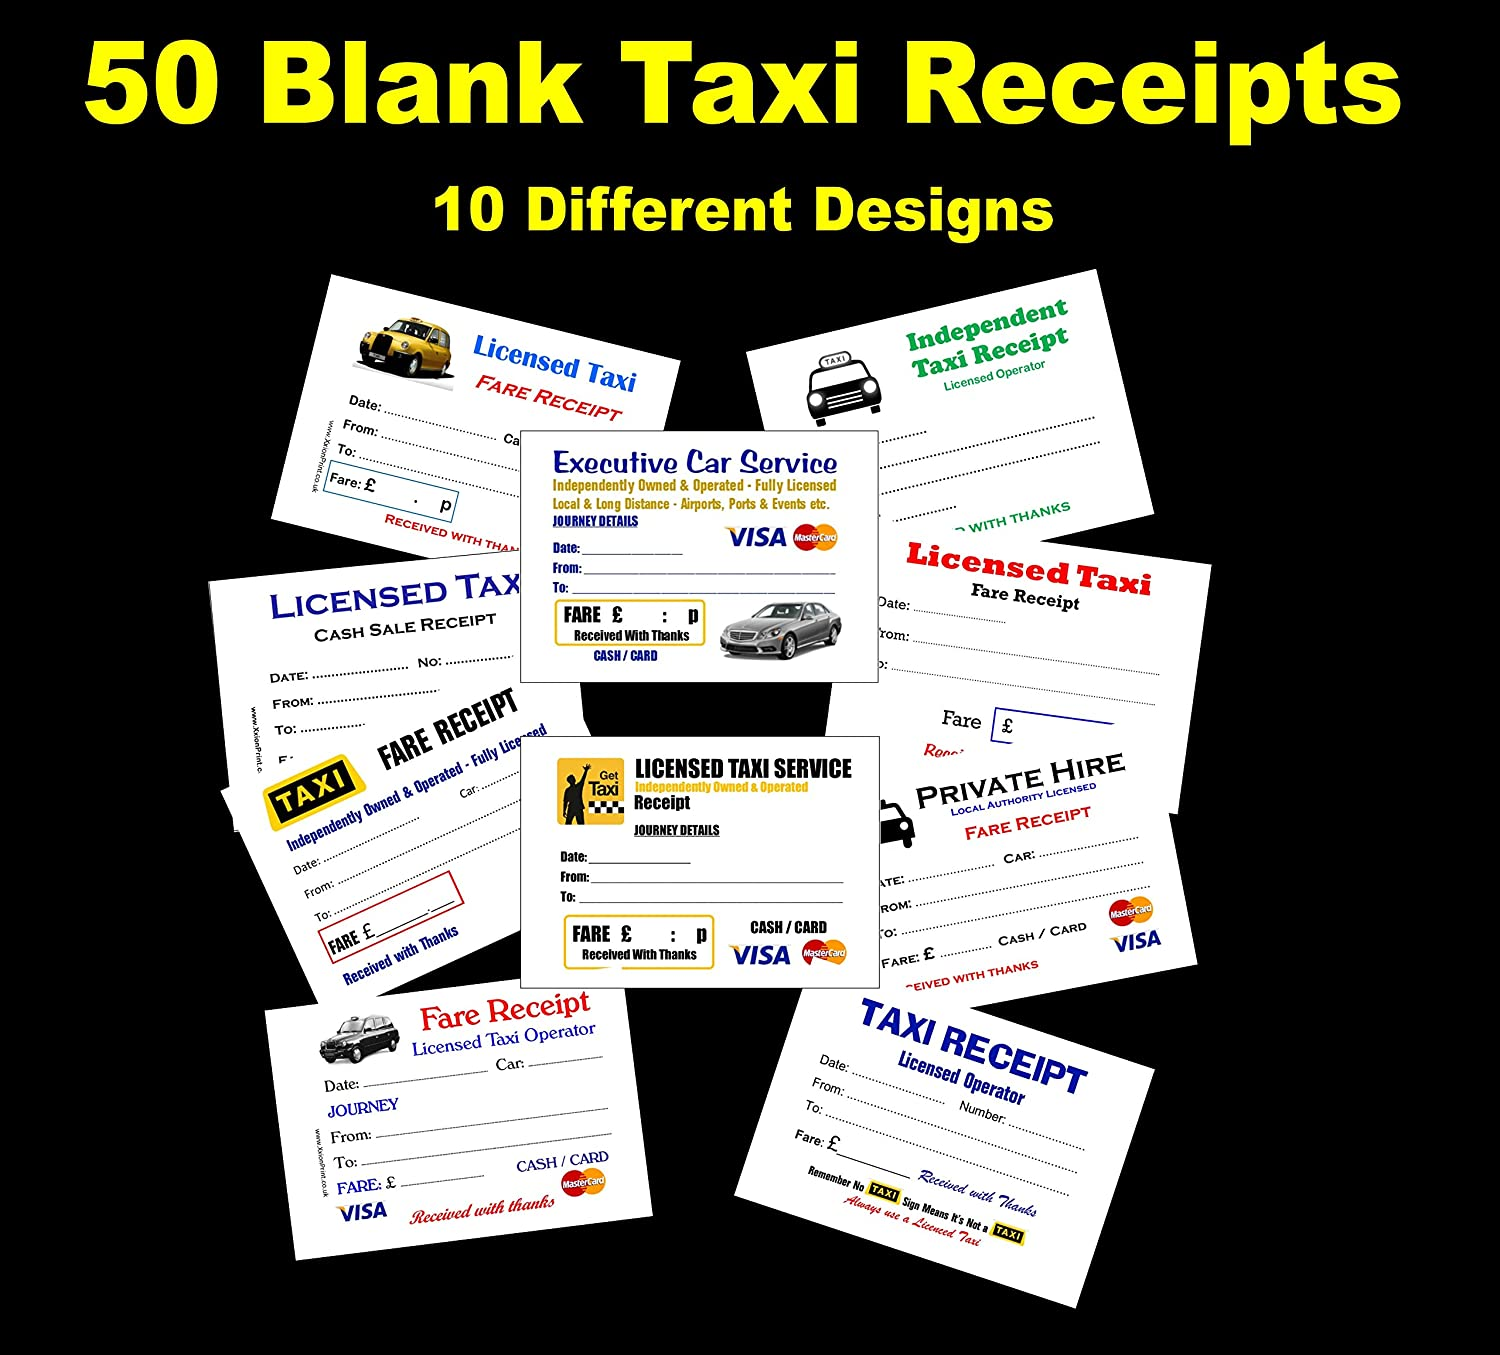 Quickbooks Online Customize Invoice Word Licensed Taxi Driver Receipt Bookpads  For London Black Cab  What Is A Proforma Invoice In The Uk Pdf with What Is Vat Invoice Pdf  Blank Taxi Receipts  Different Designs  Of Each Free Fast Uk  Delivery How Do You Spell Receipt Pdf